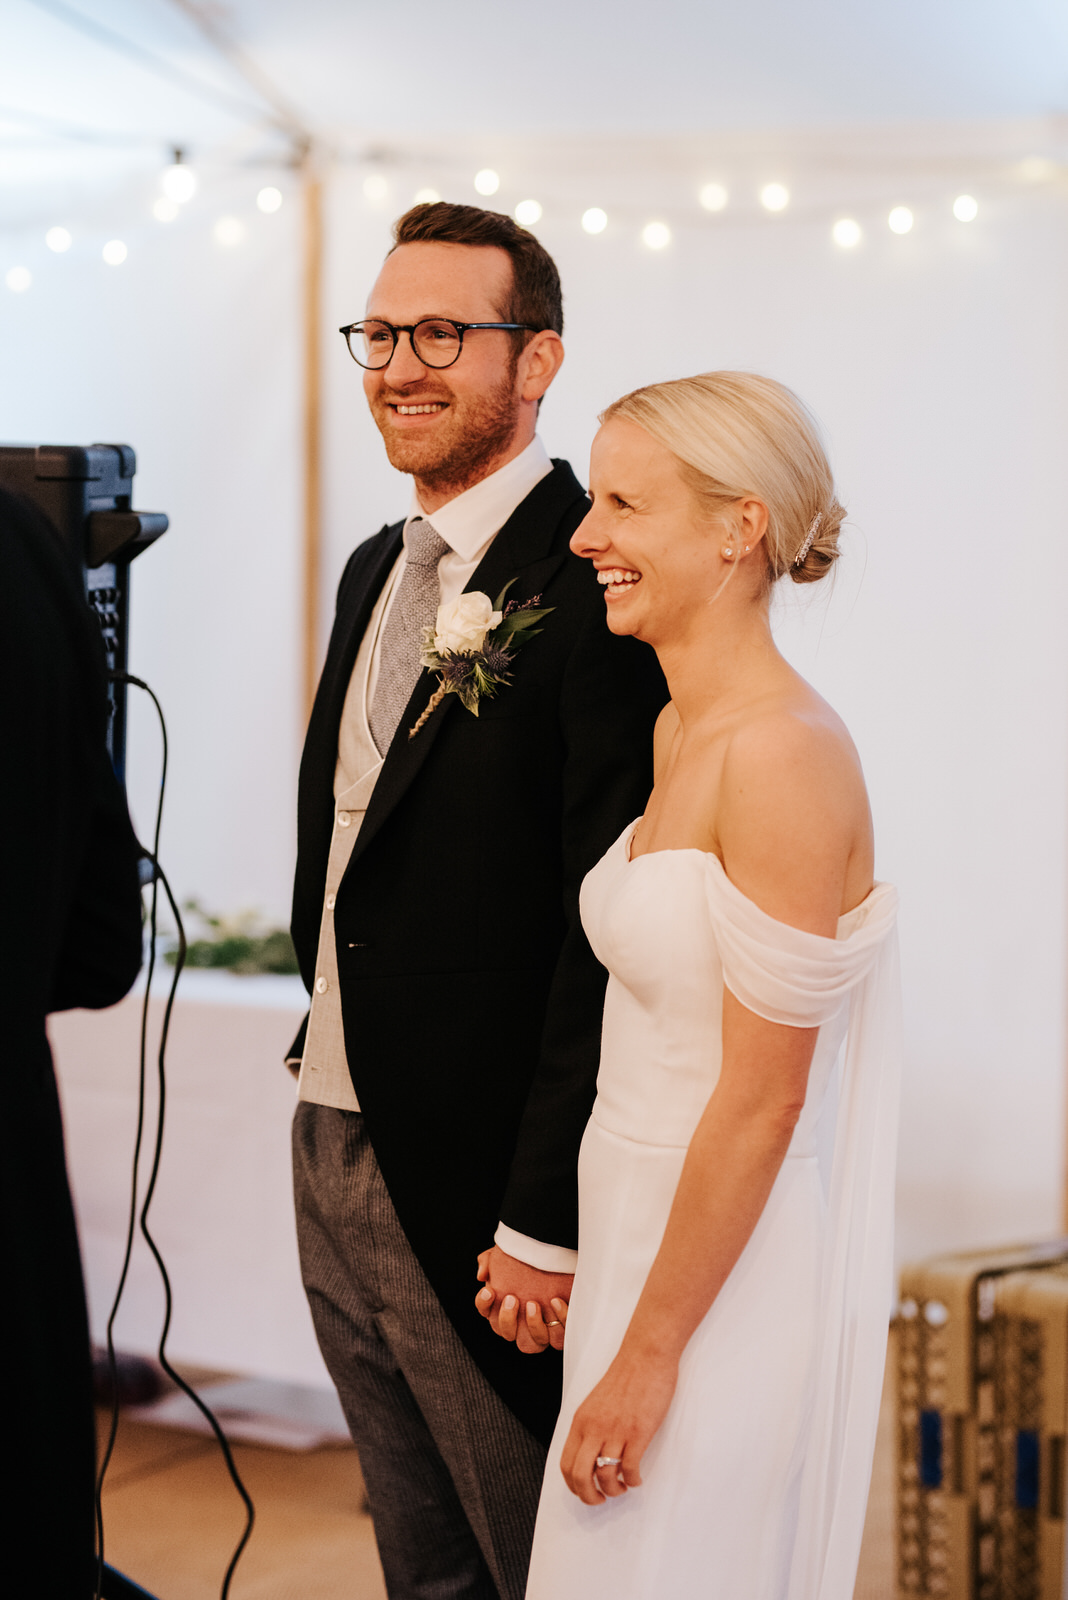 Bride and groom laugh and smile, holding hands, while fathe of the bride delivers wedding speech